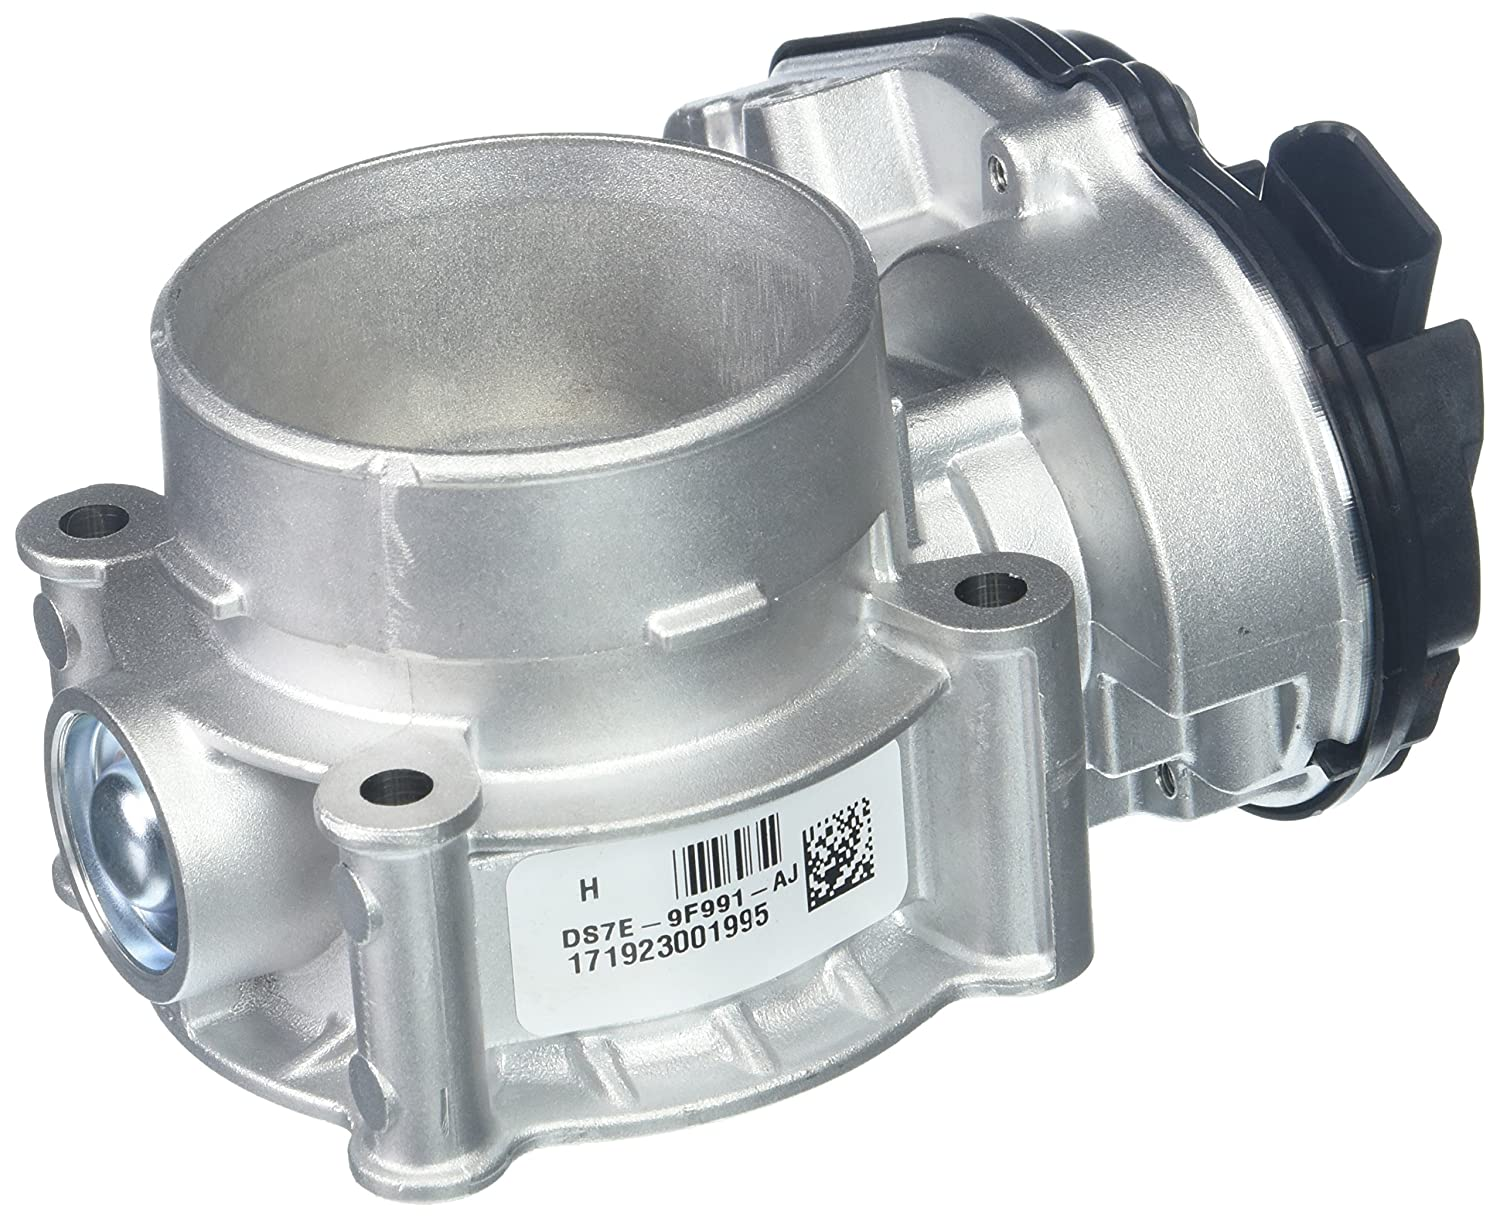 Ford Escape Hybridstallswill Stay Running With Carb Spray